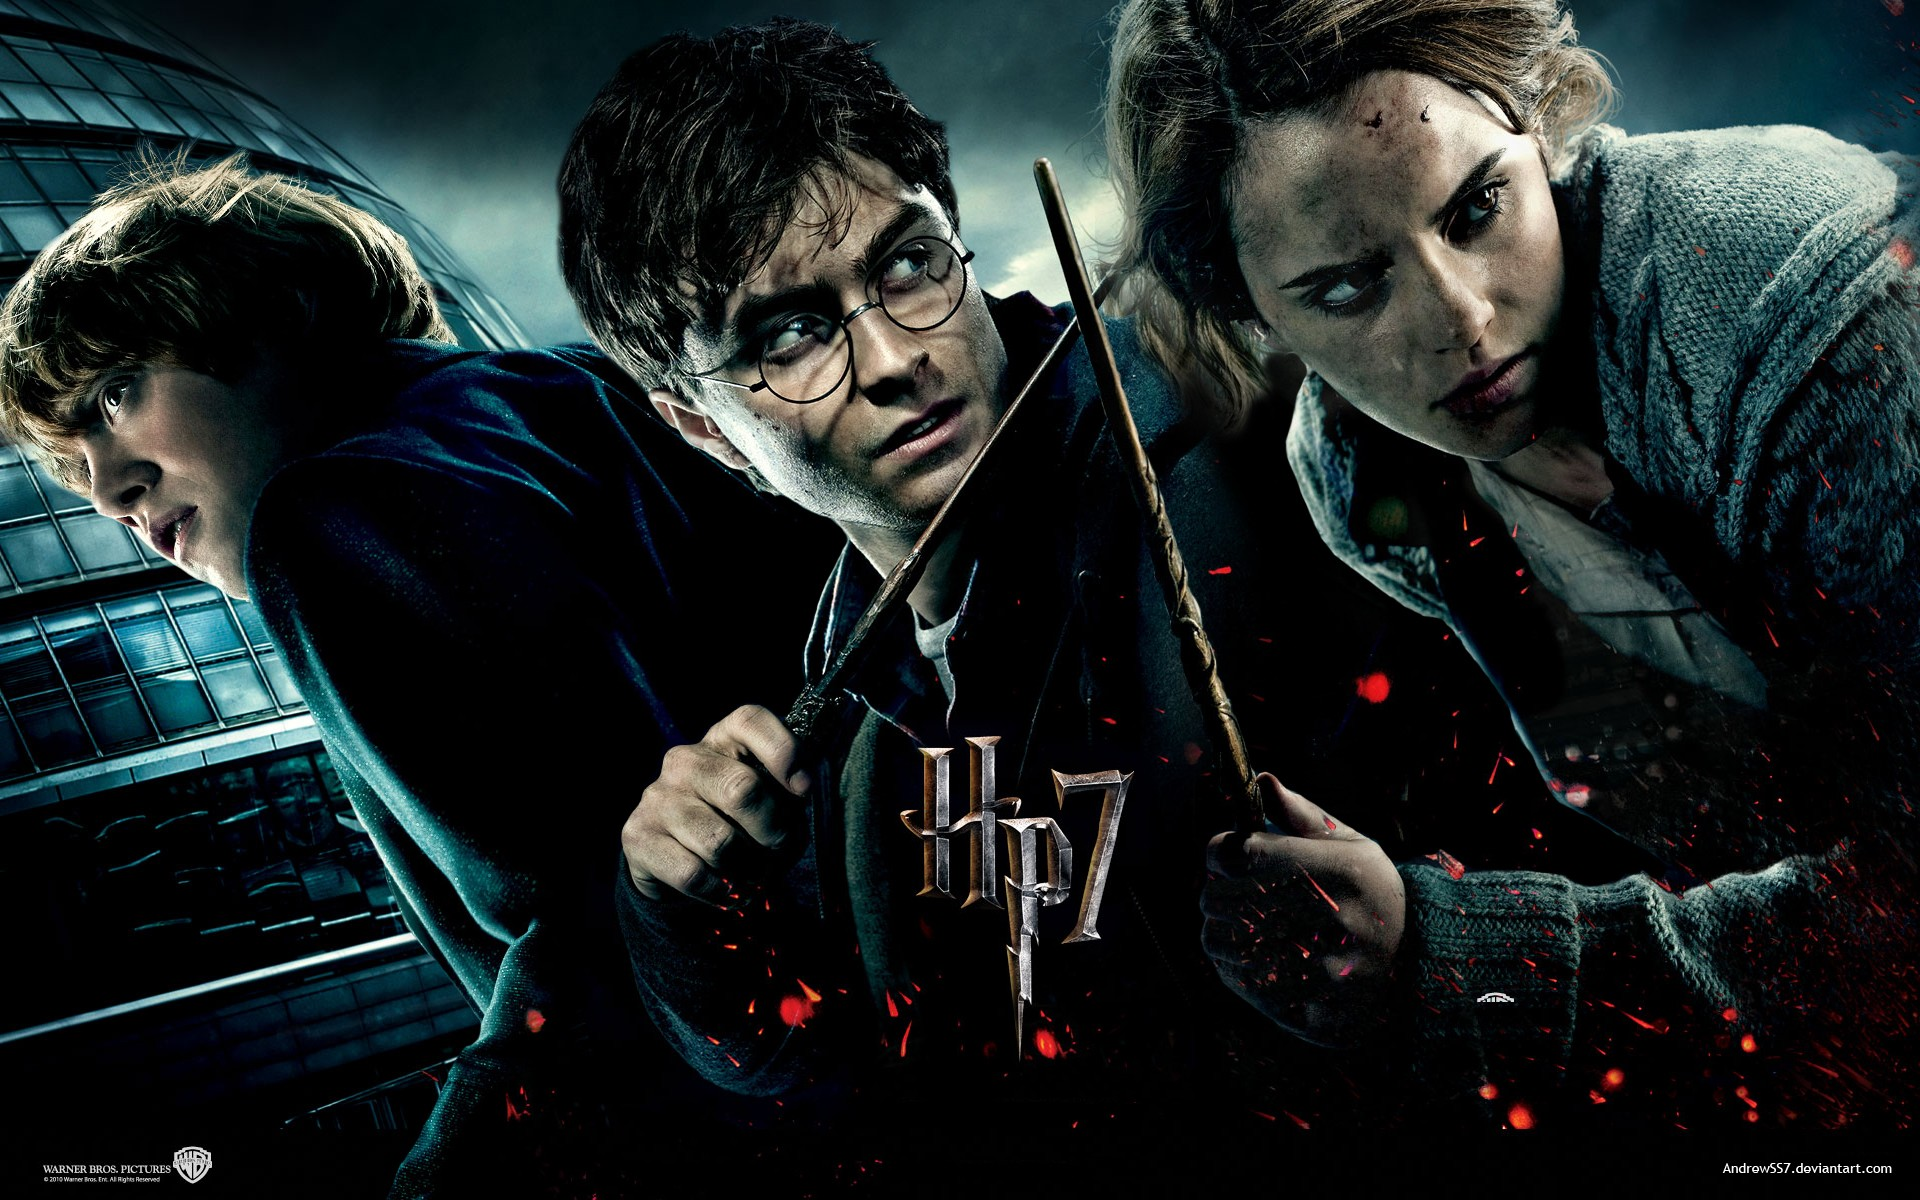 HArry-Potter-los-3